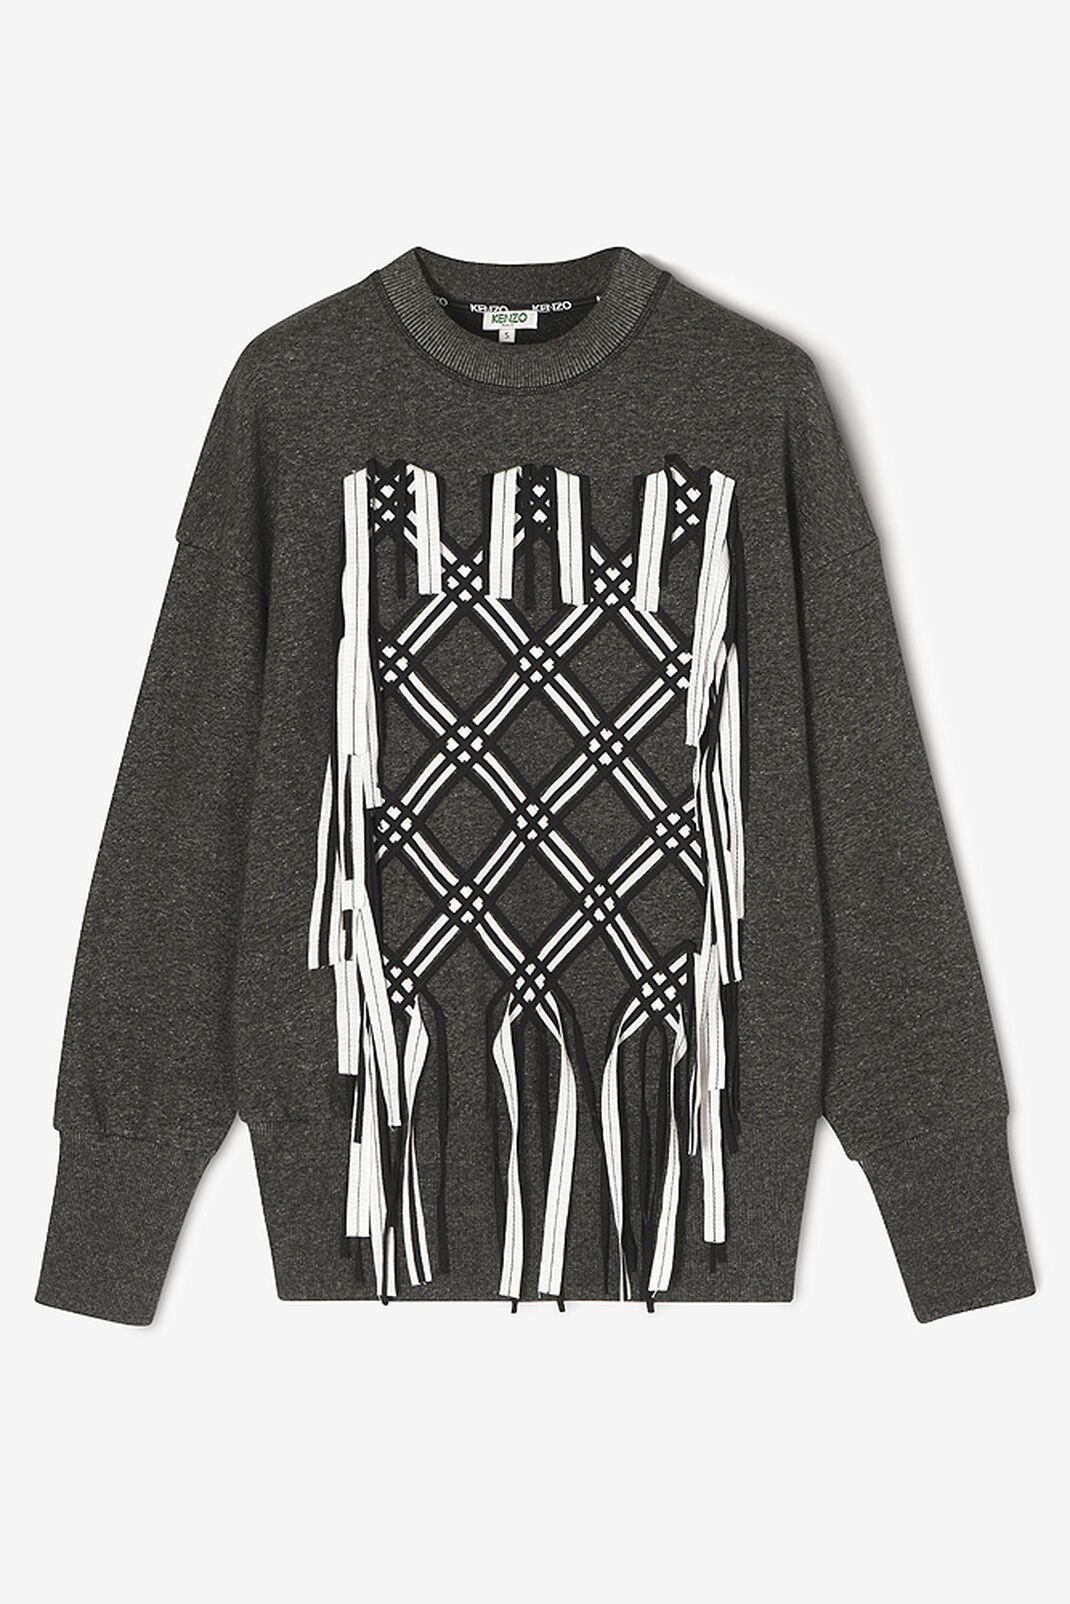 ANTHRACITE Sweatshirt with diamond embroidery for women KENZO